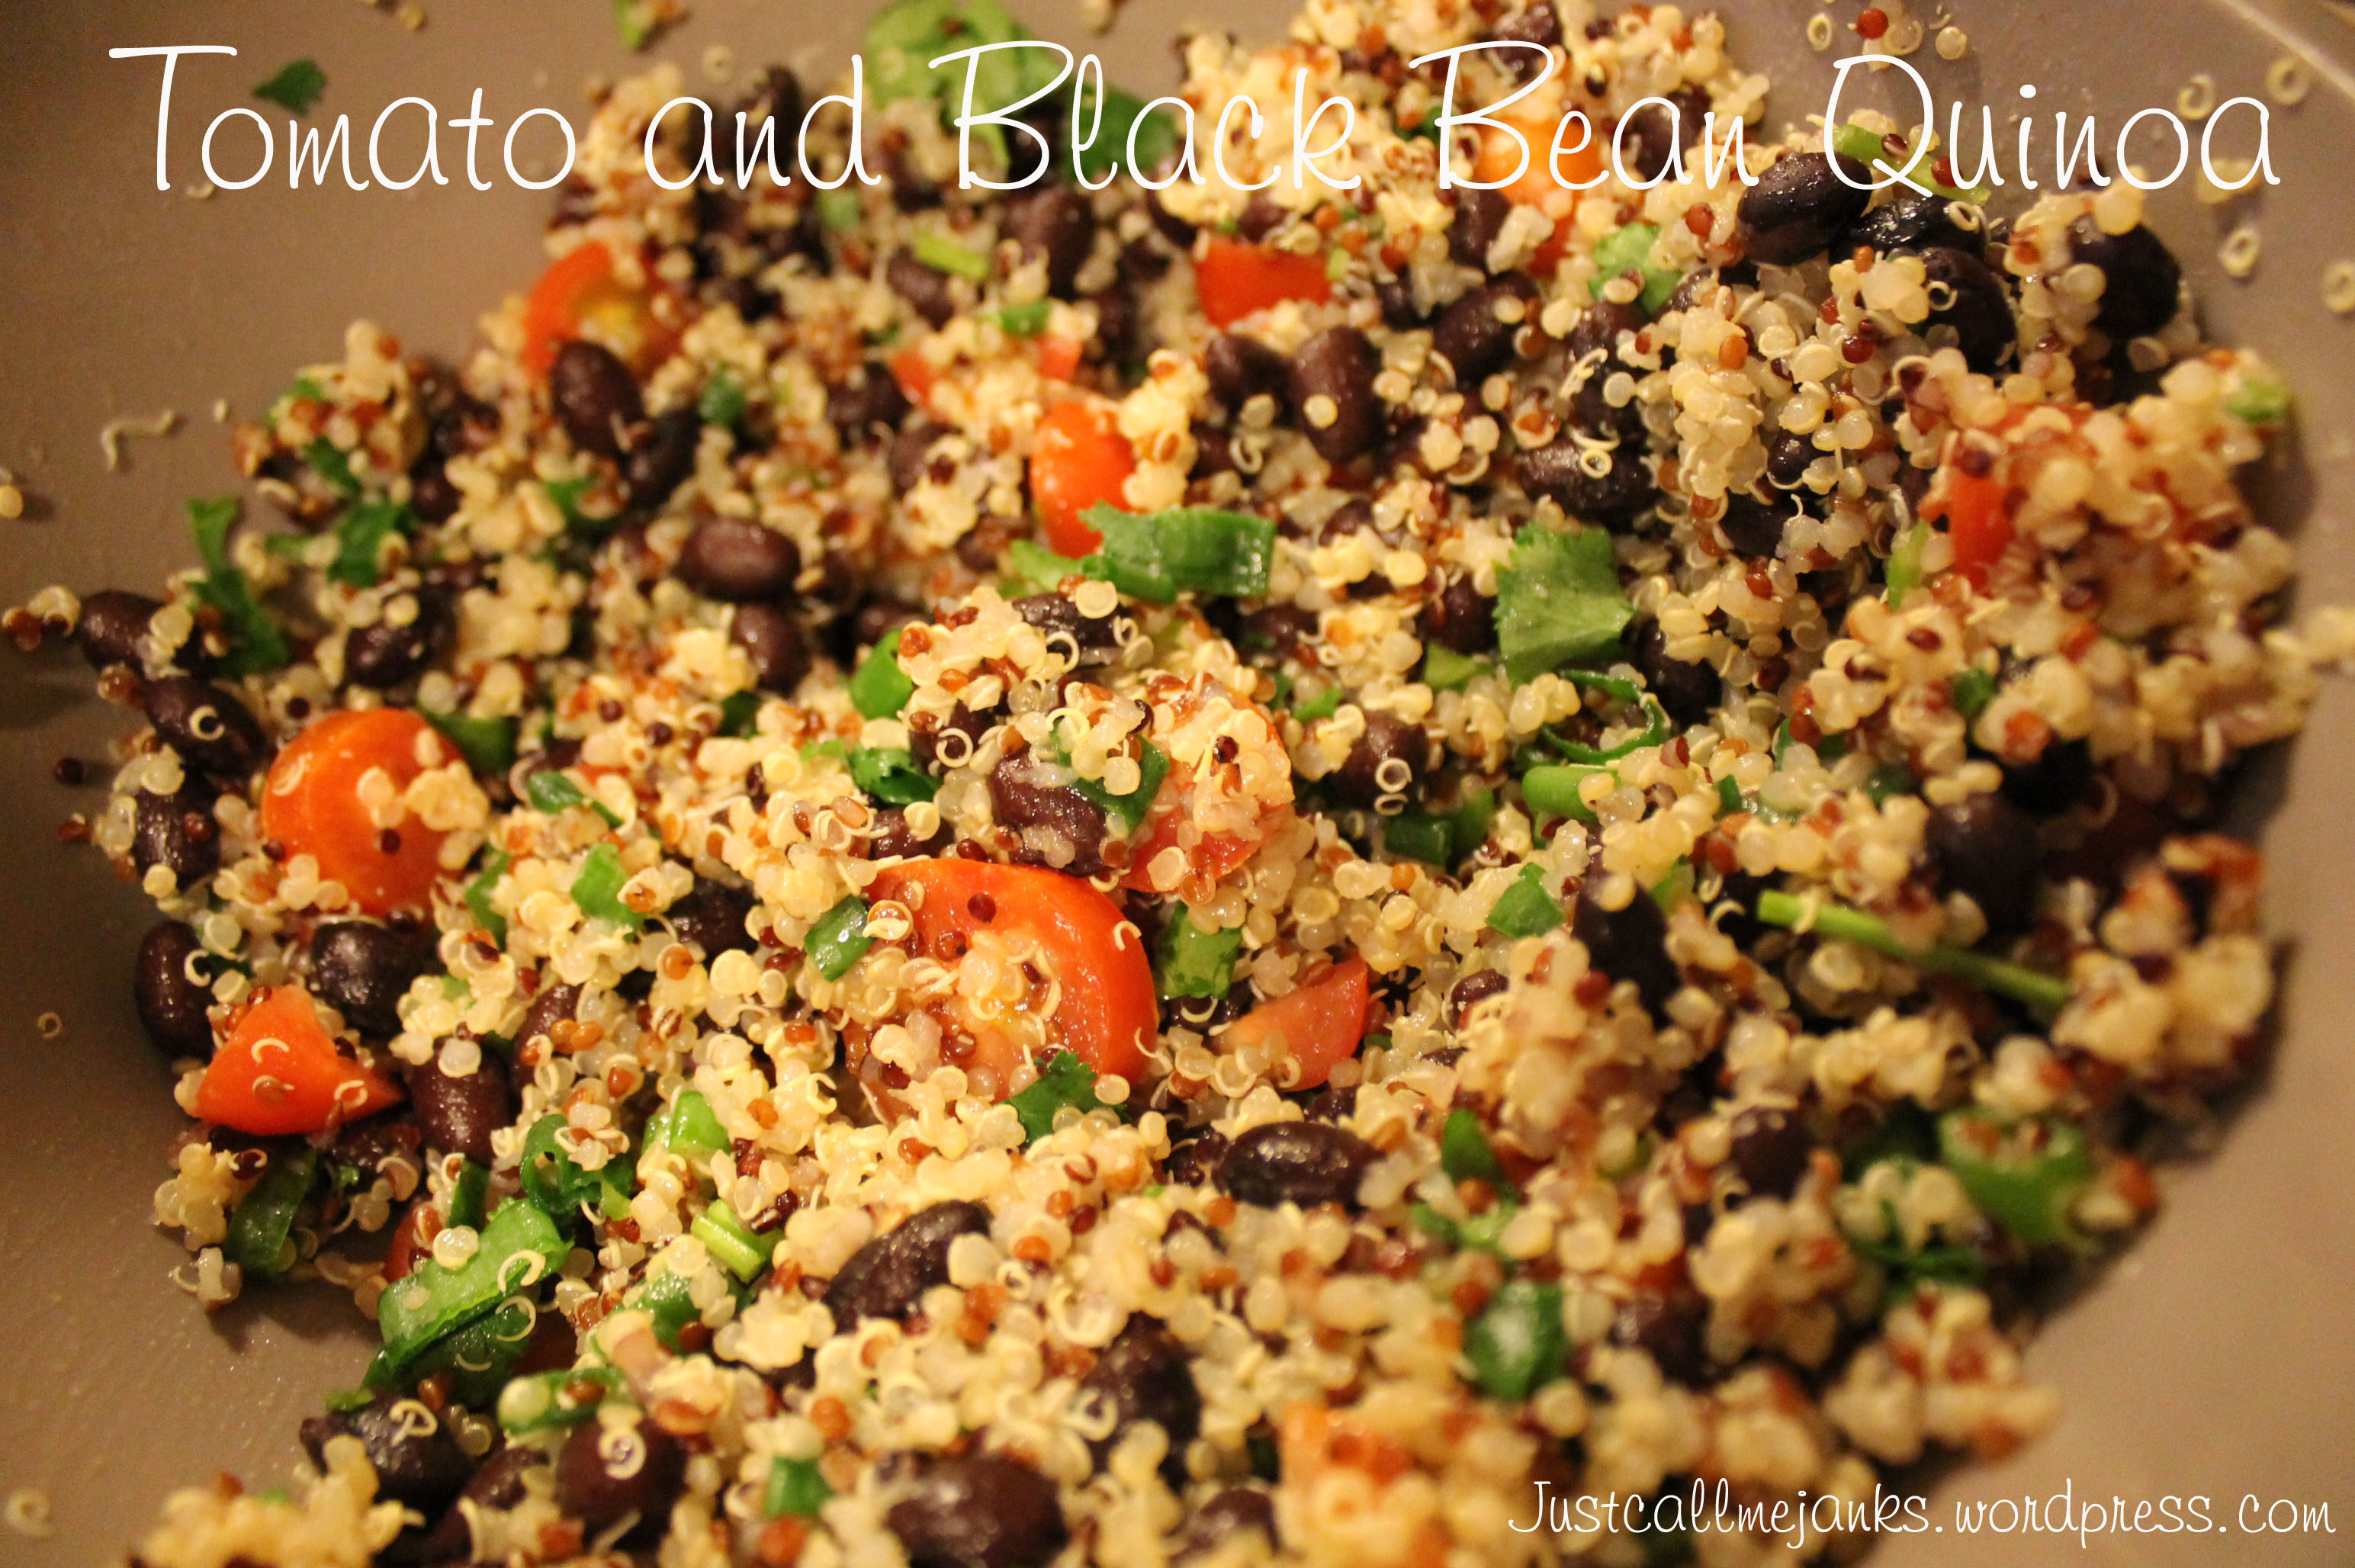 Tomato and Black Bean Quinoa (adapted from Epicurious.com )